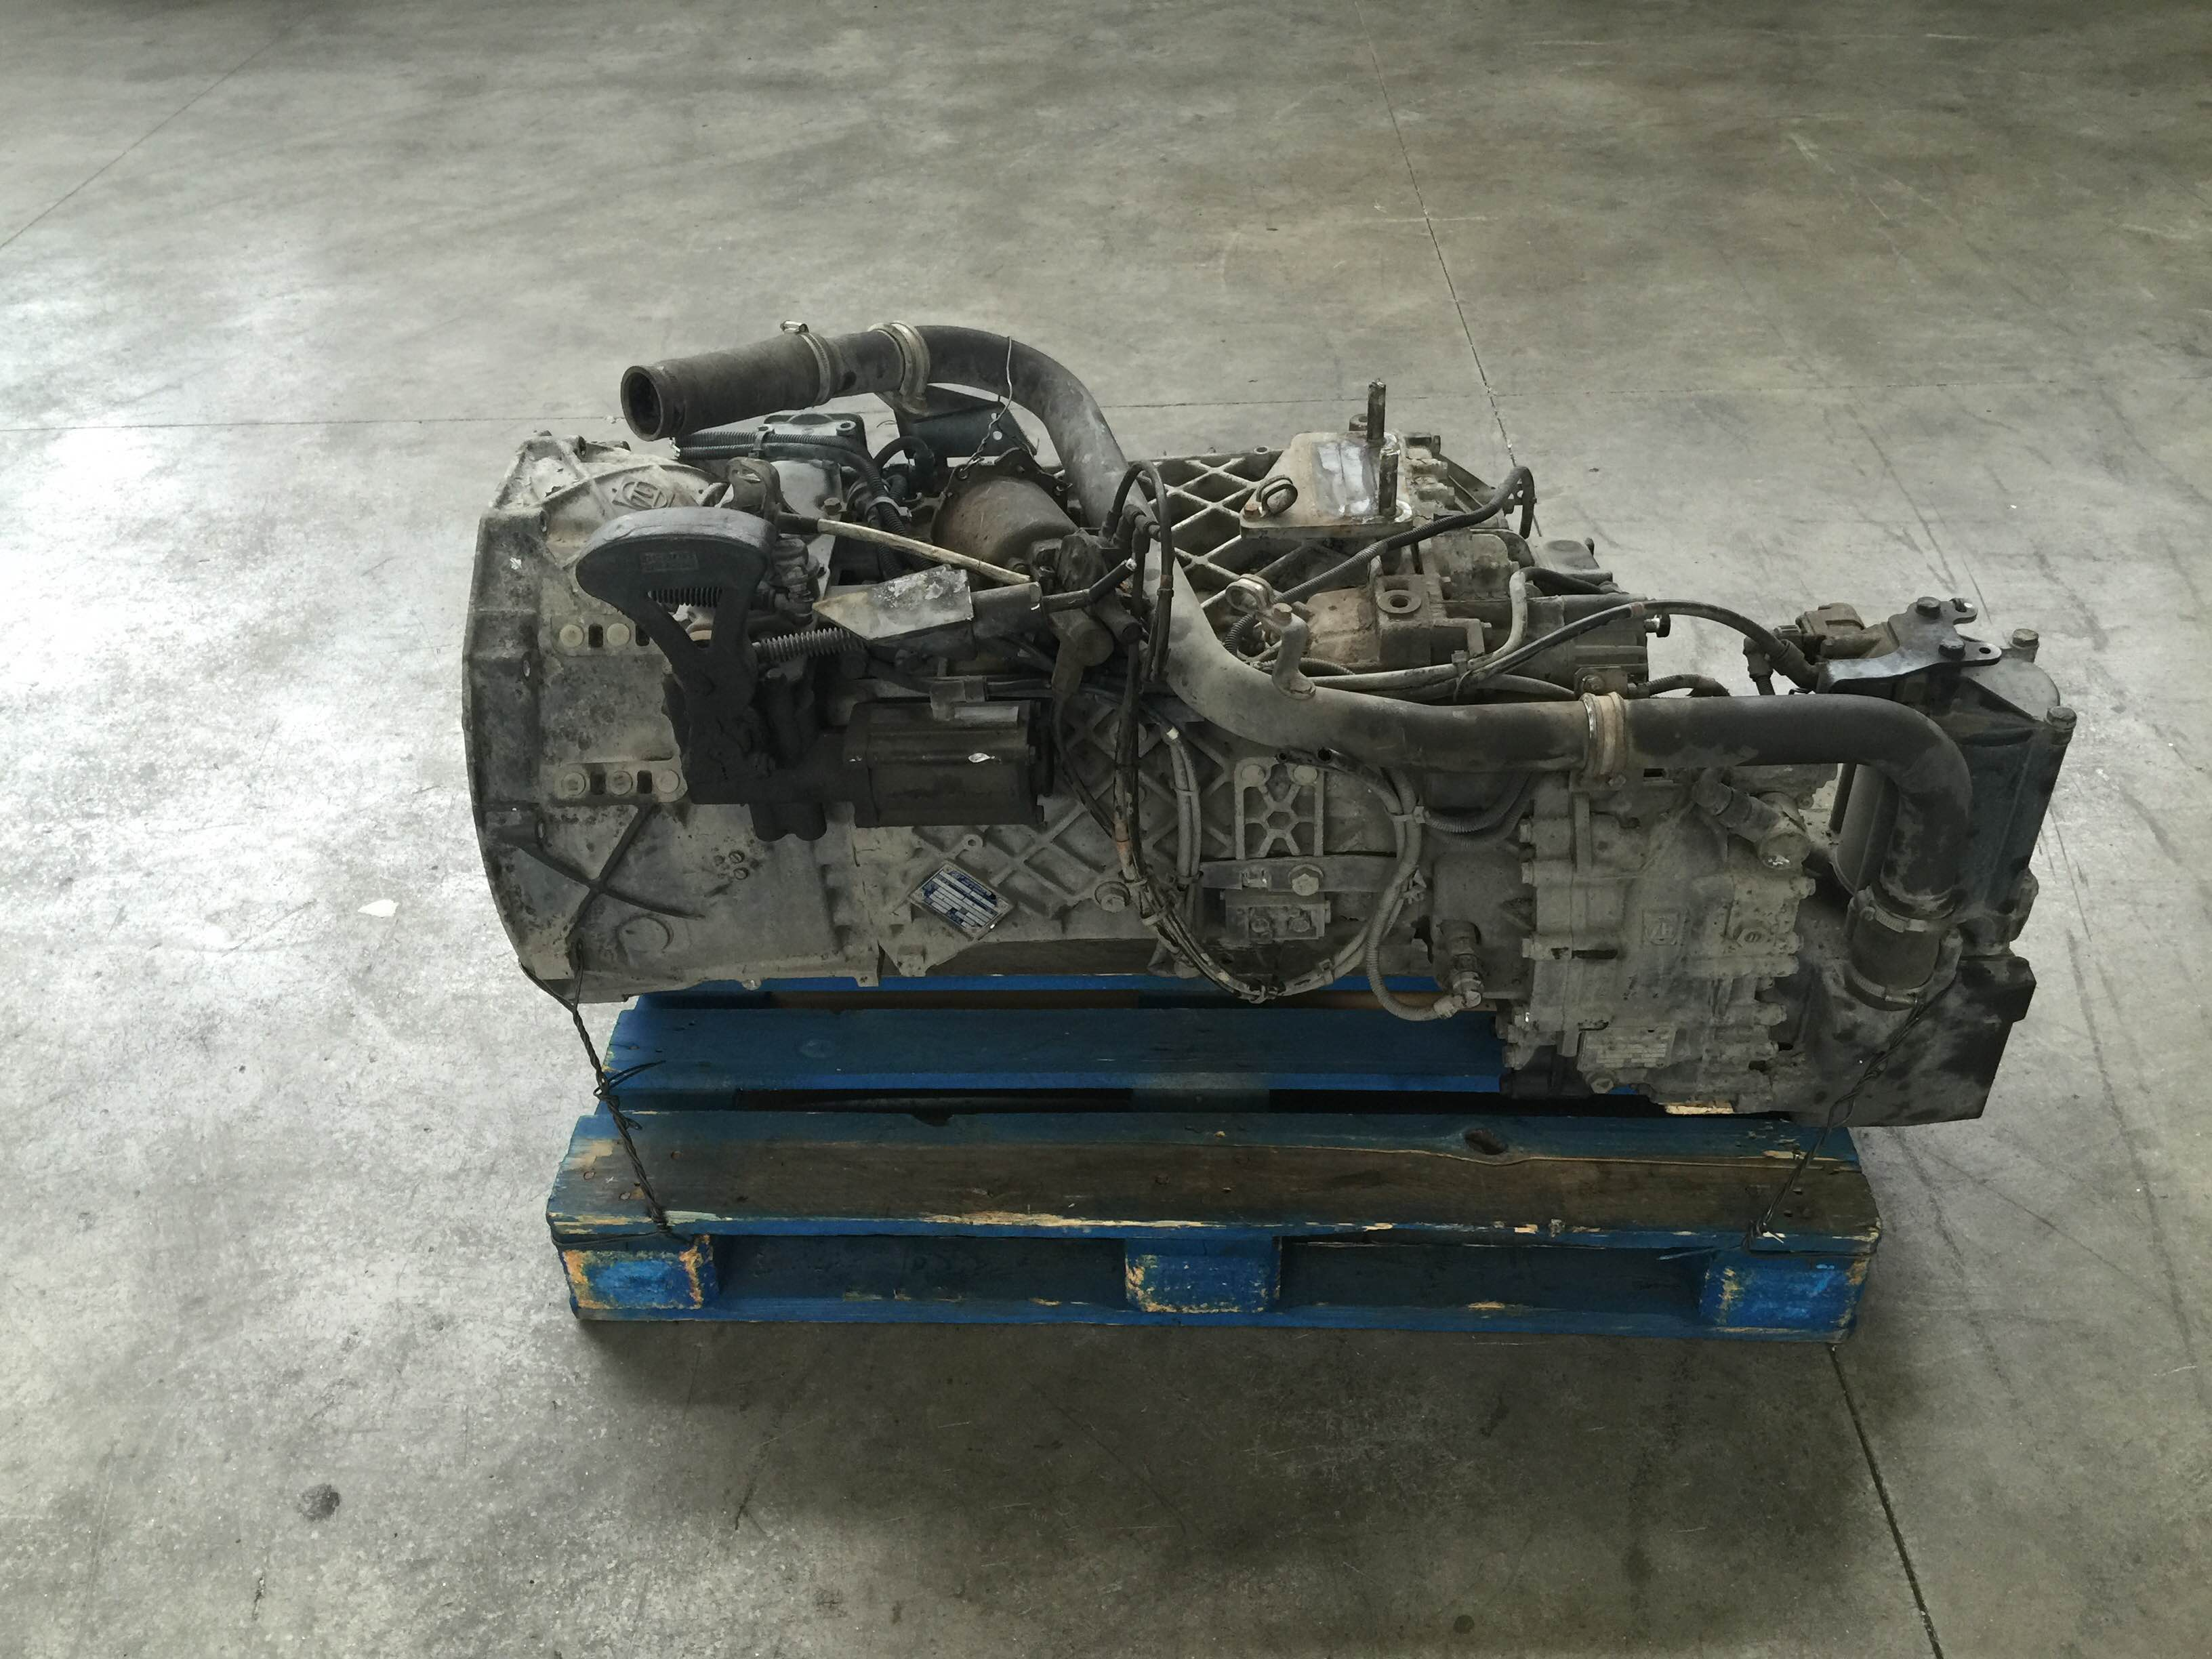 cambio renault magnum 440 e-tech zf 16 s 221 it zf 1316 041 755 renault 5010545005